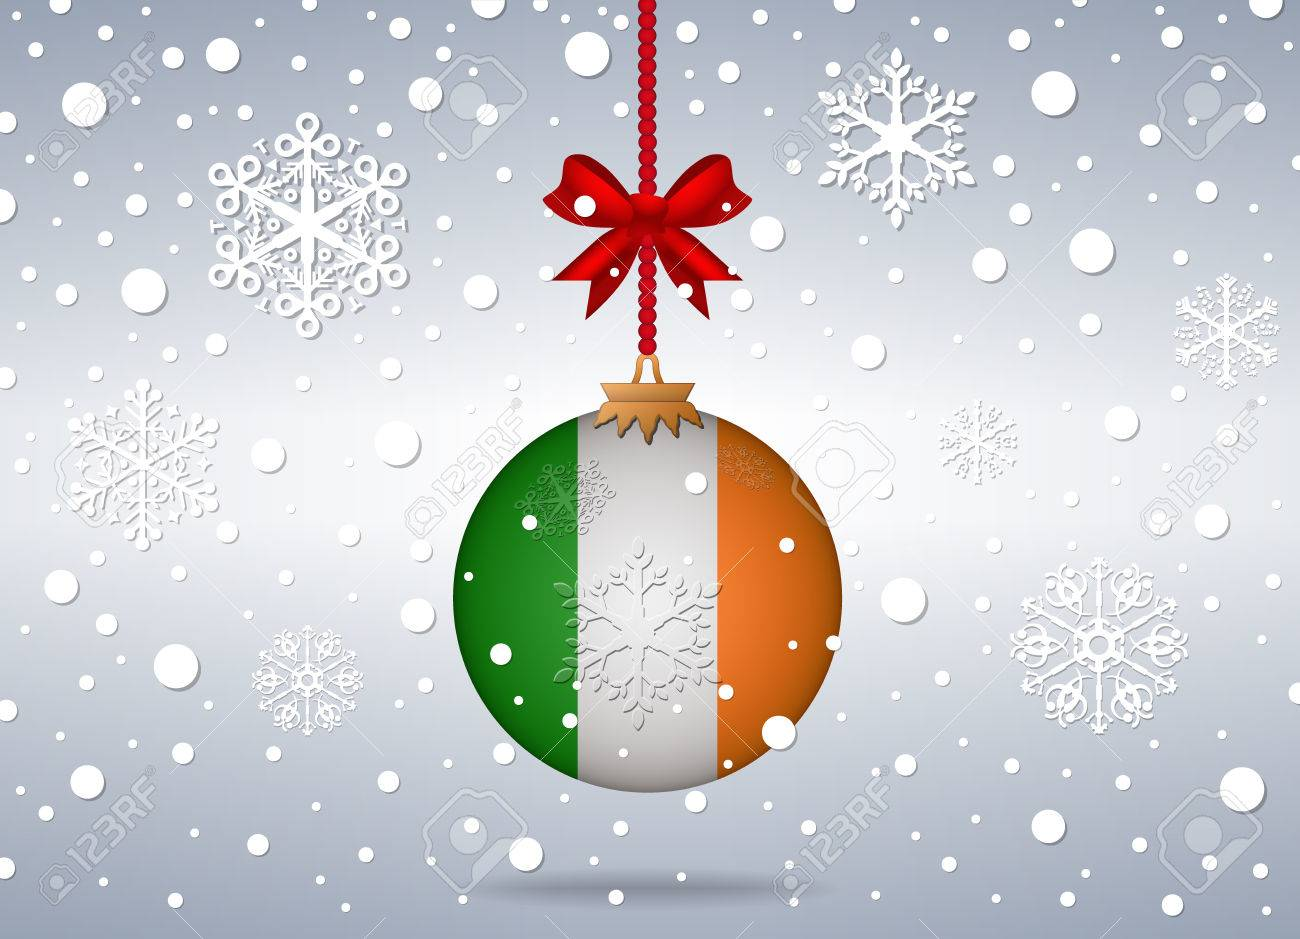 Christmas Background With Ireland Flag Ball Royalty Free Cliparts ...